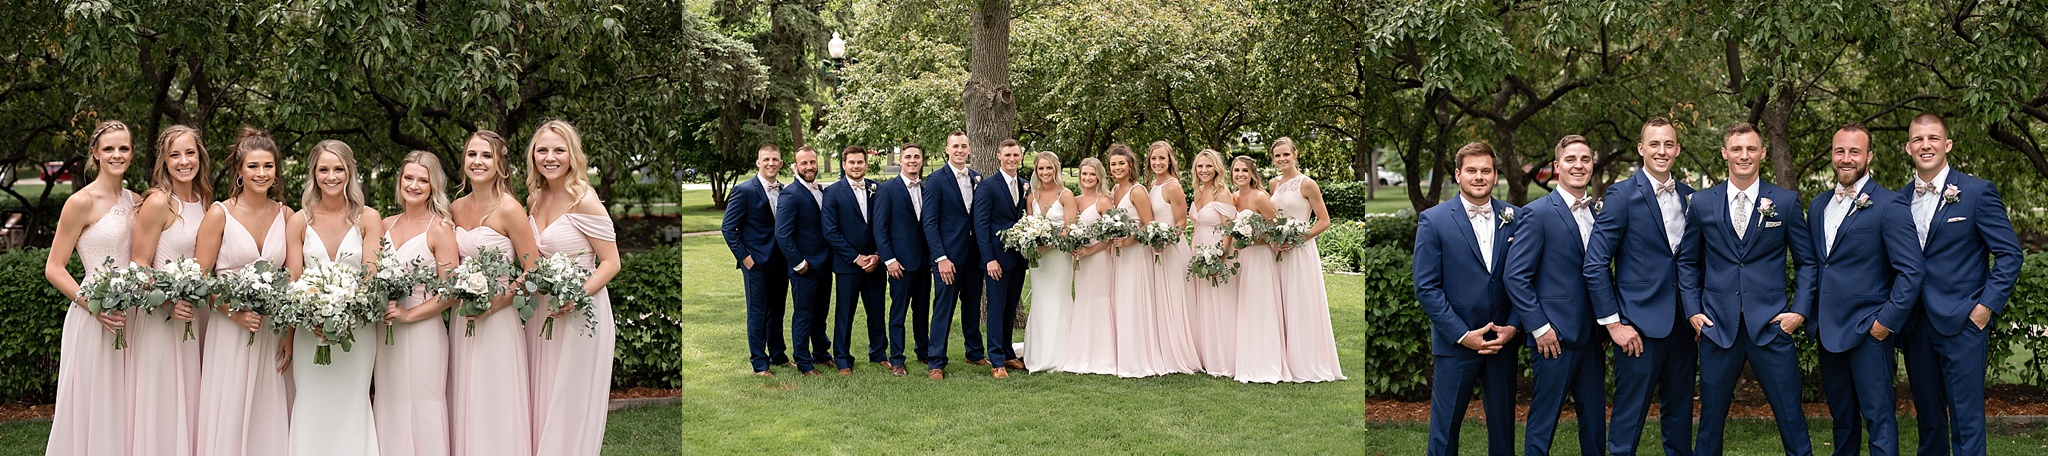 wedding party at garden wedding in south dakota blue suits with blush bridesmaids dresses